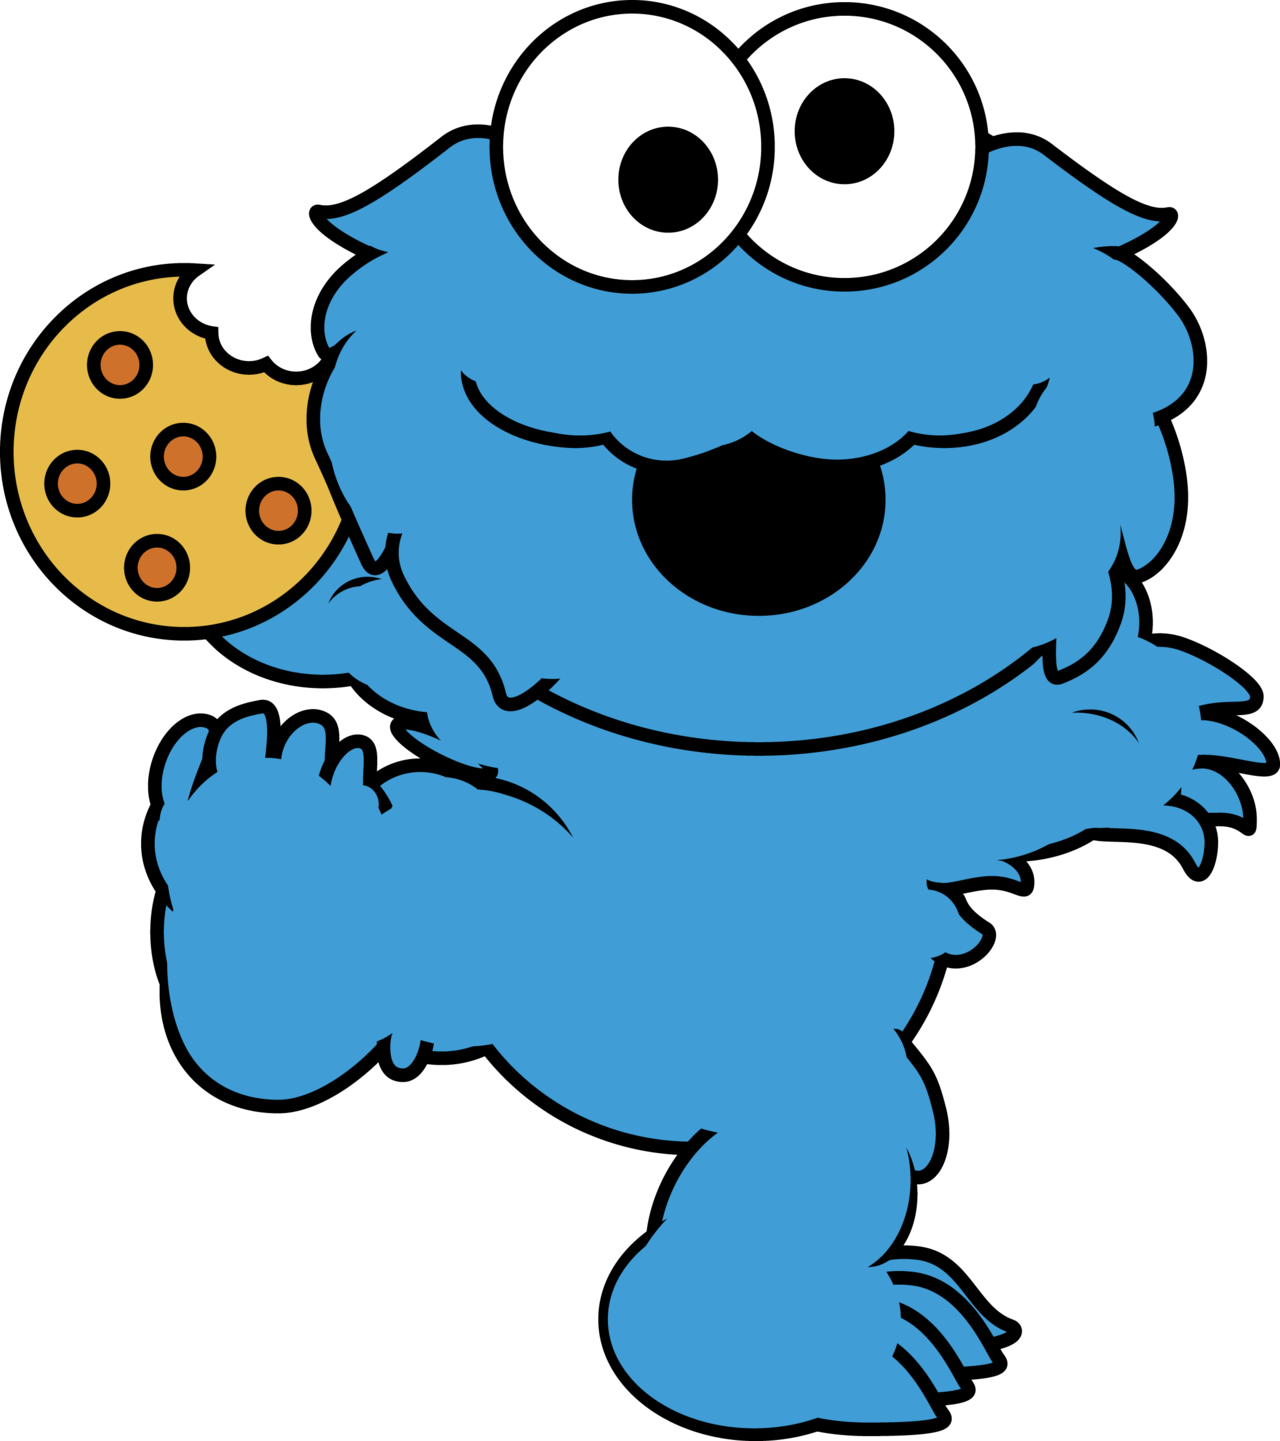 graphic freeuse stock Eyeballs clipart cookie monster. Google search pinterest